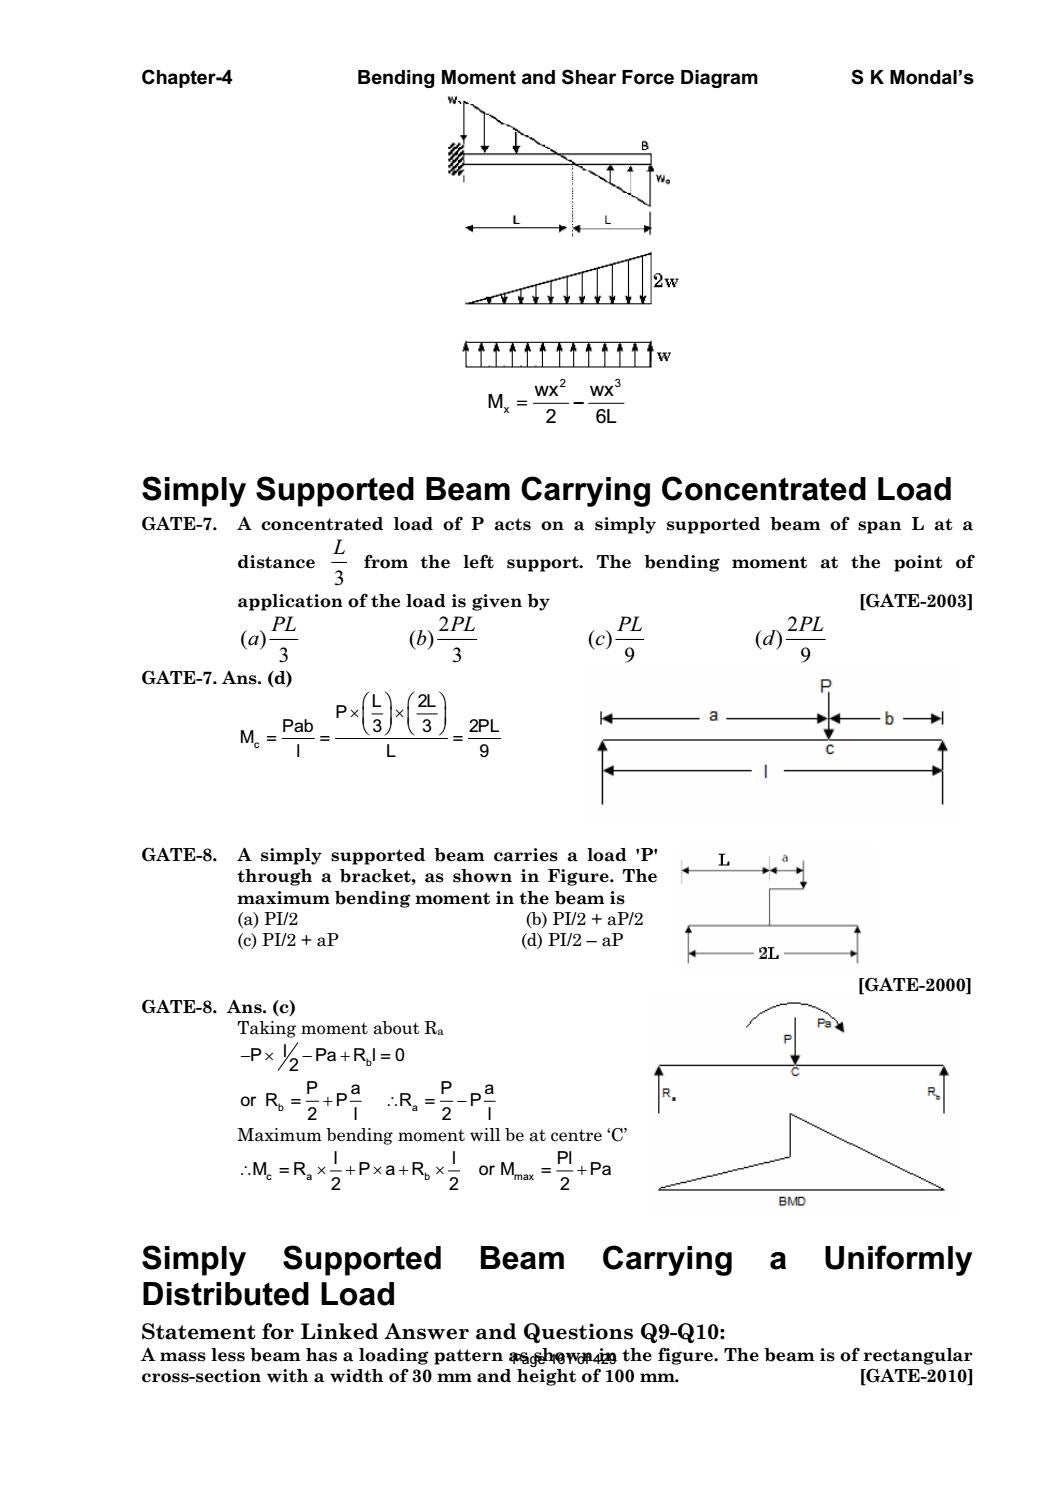 Strength Of Materials By S K Mondal Pdf Sdharmaraj Issuu Bending And Shear Force Diagrams